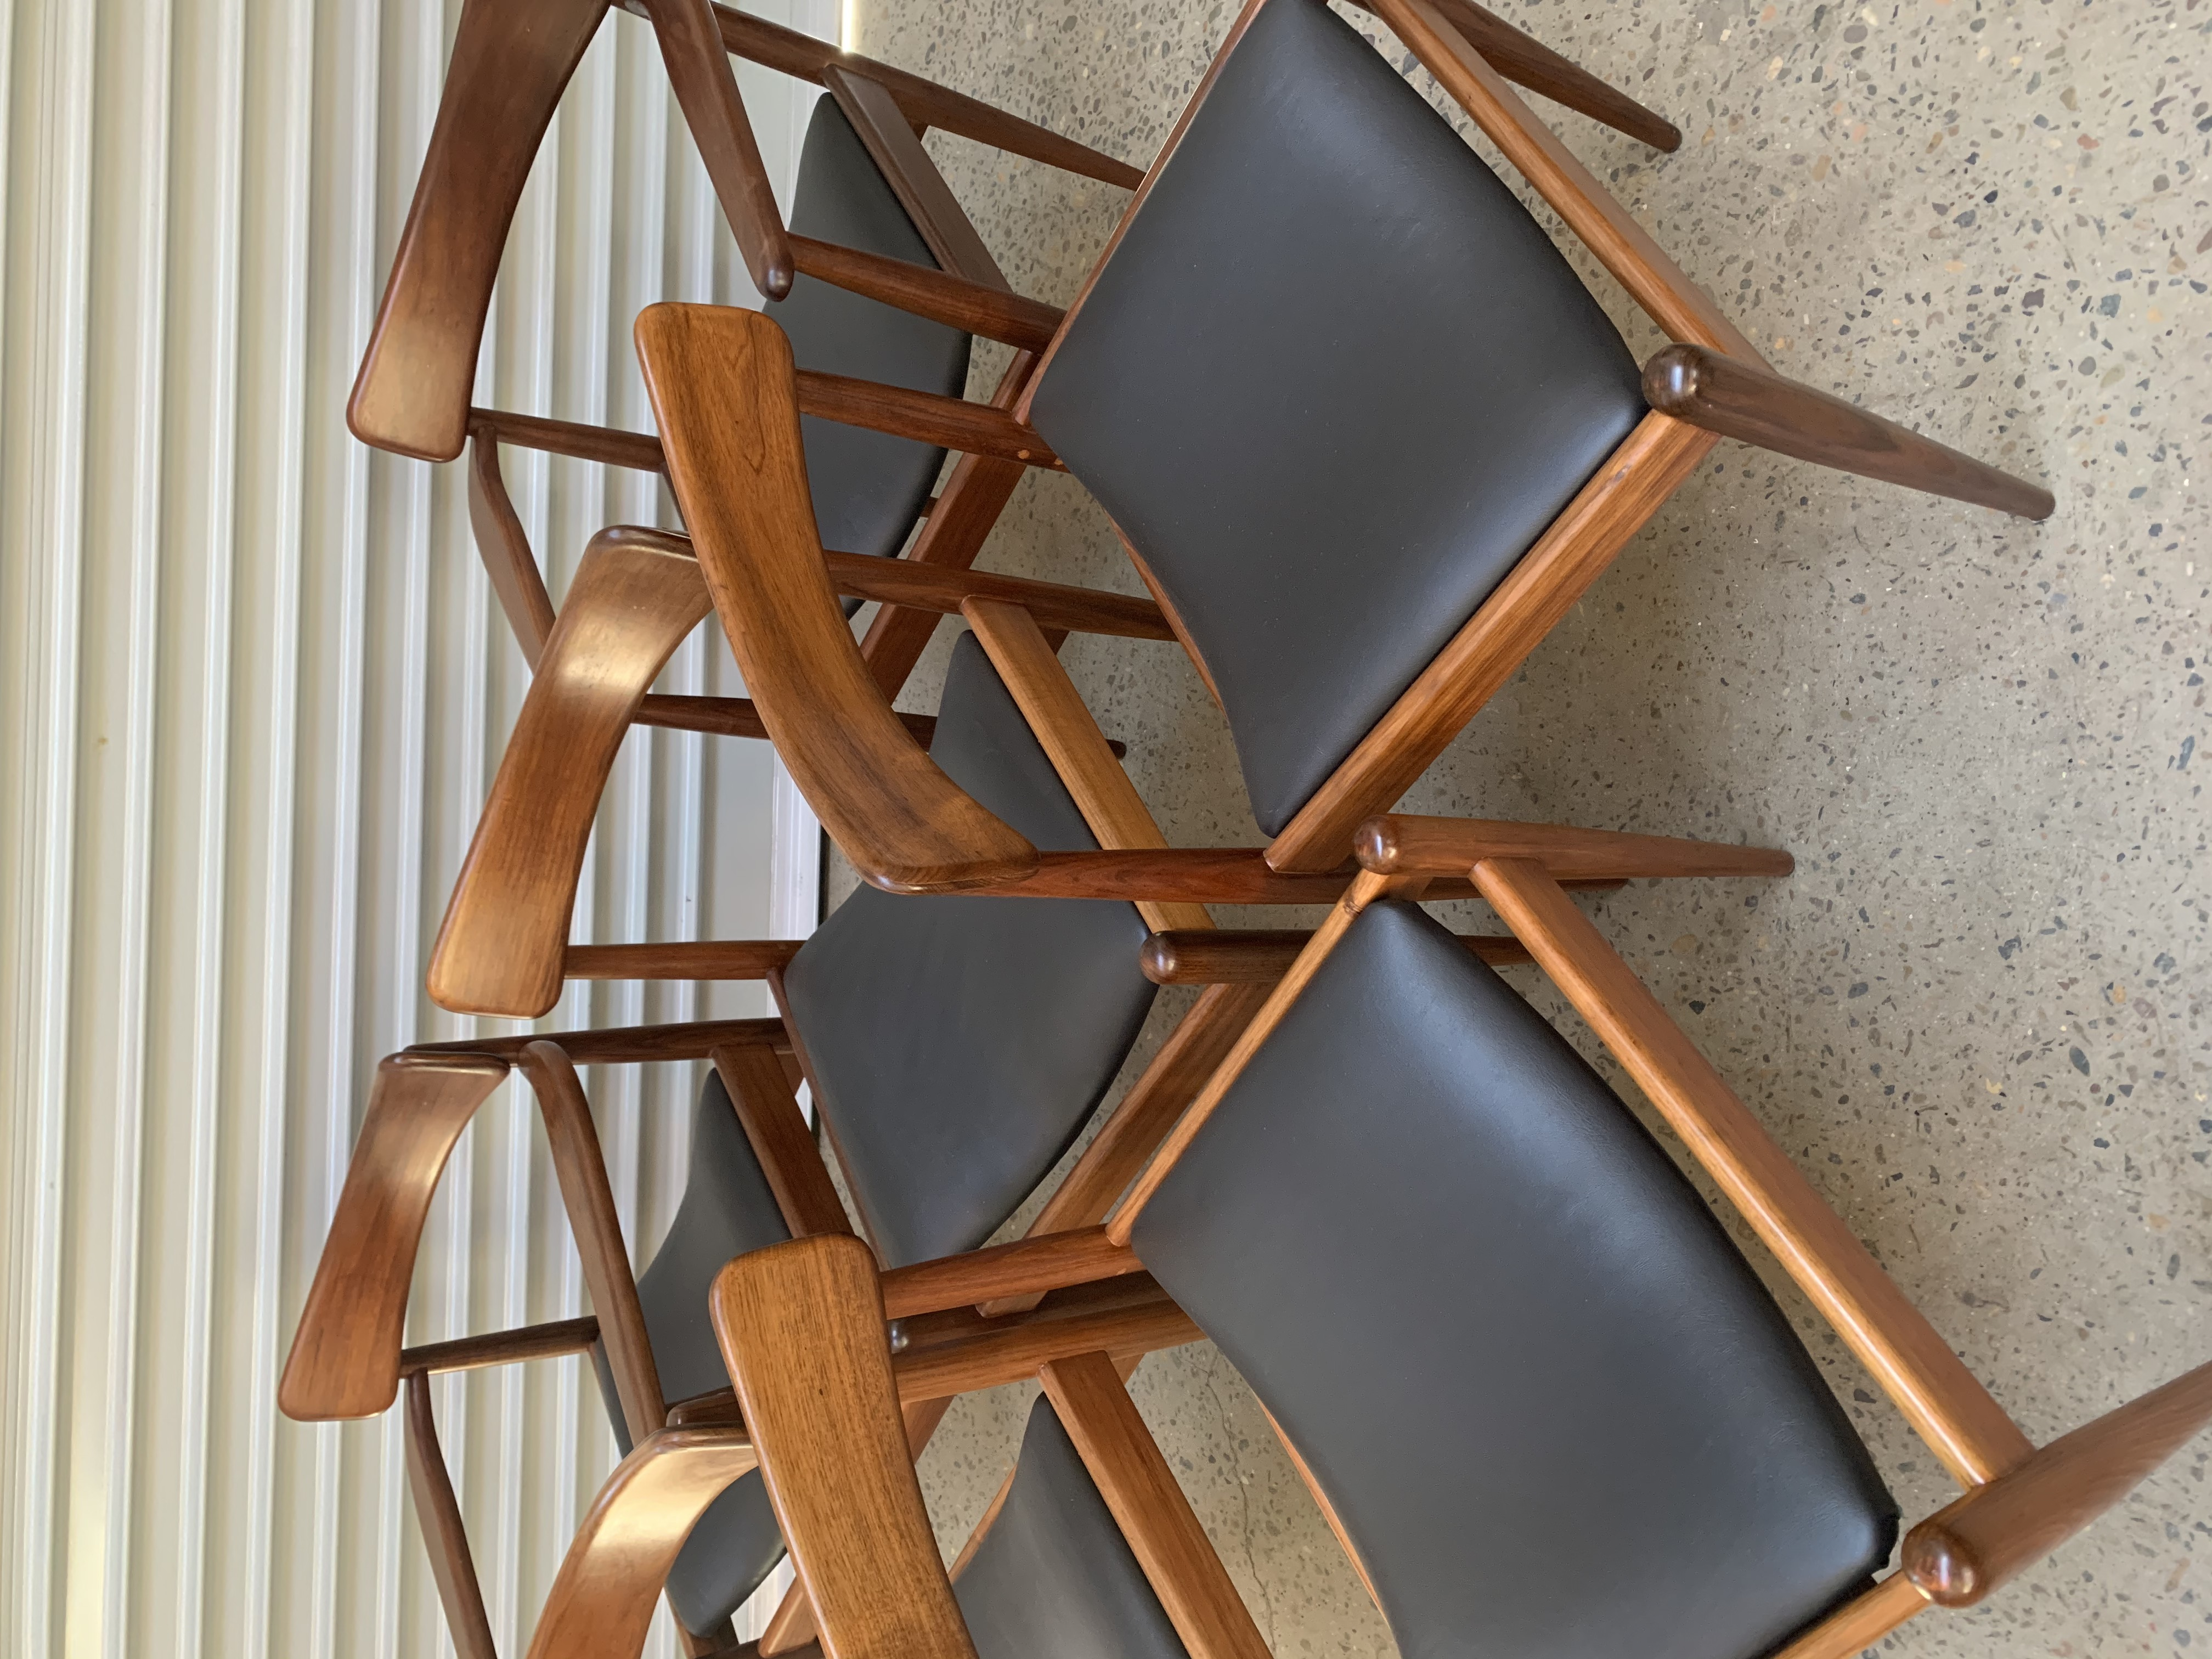 Parker Nordic chairs